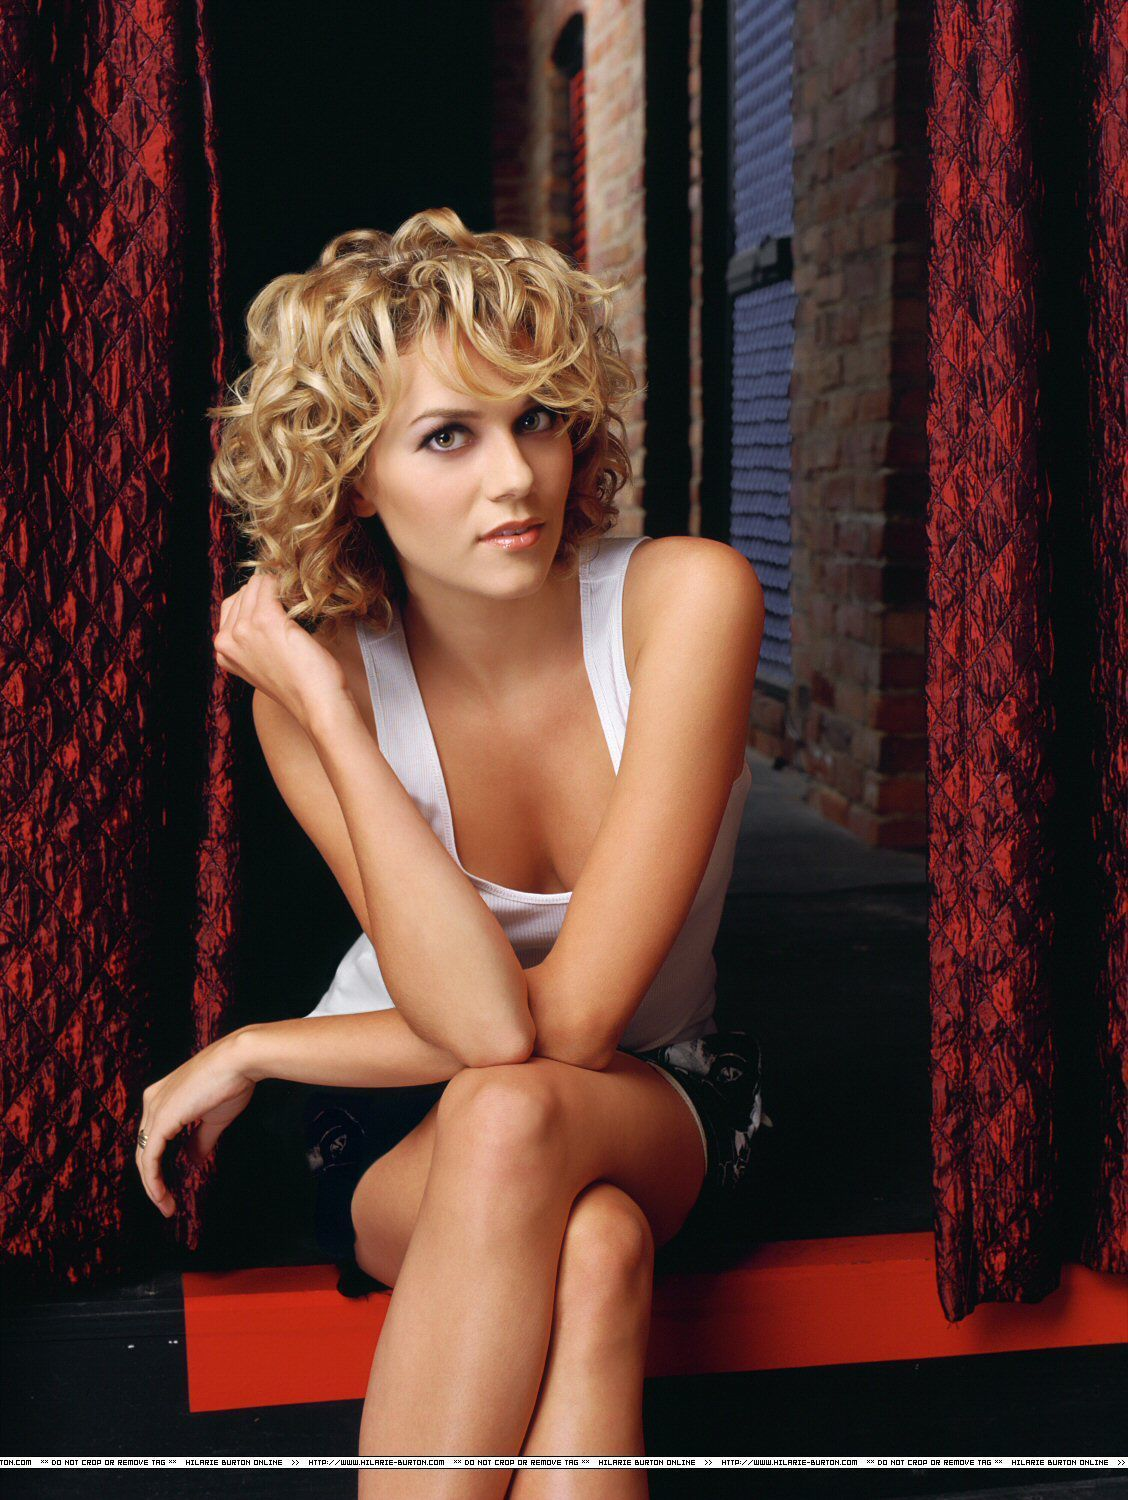 One Tree Hill Season 3 Photoshoot - Cute Hairstyles For Curly Hair